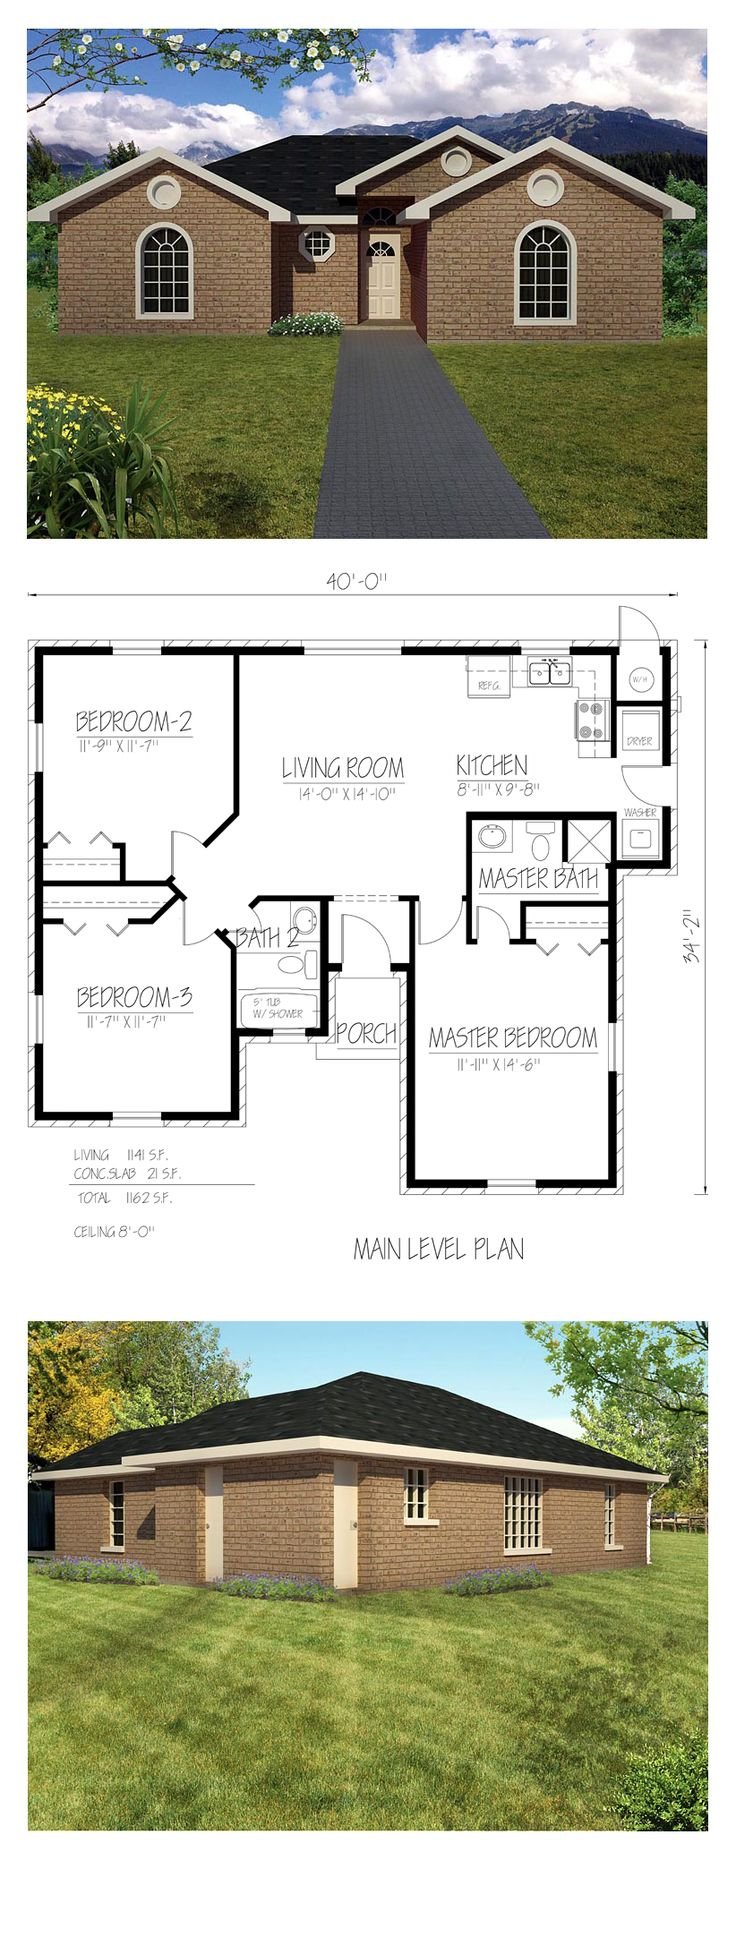 Southwest house plan 71921 total living area 1141 sq for Southwest house plans